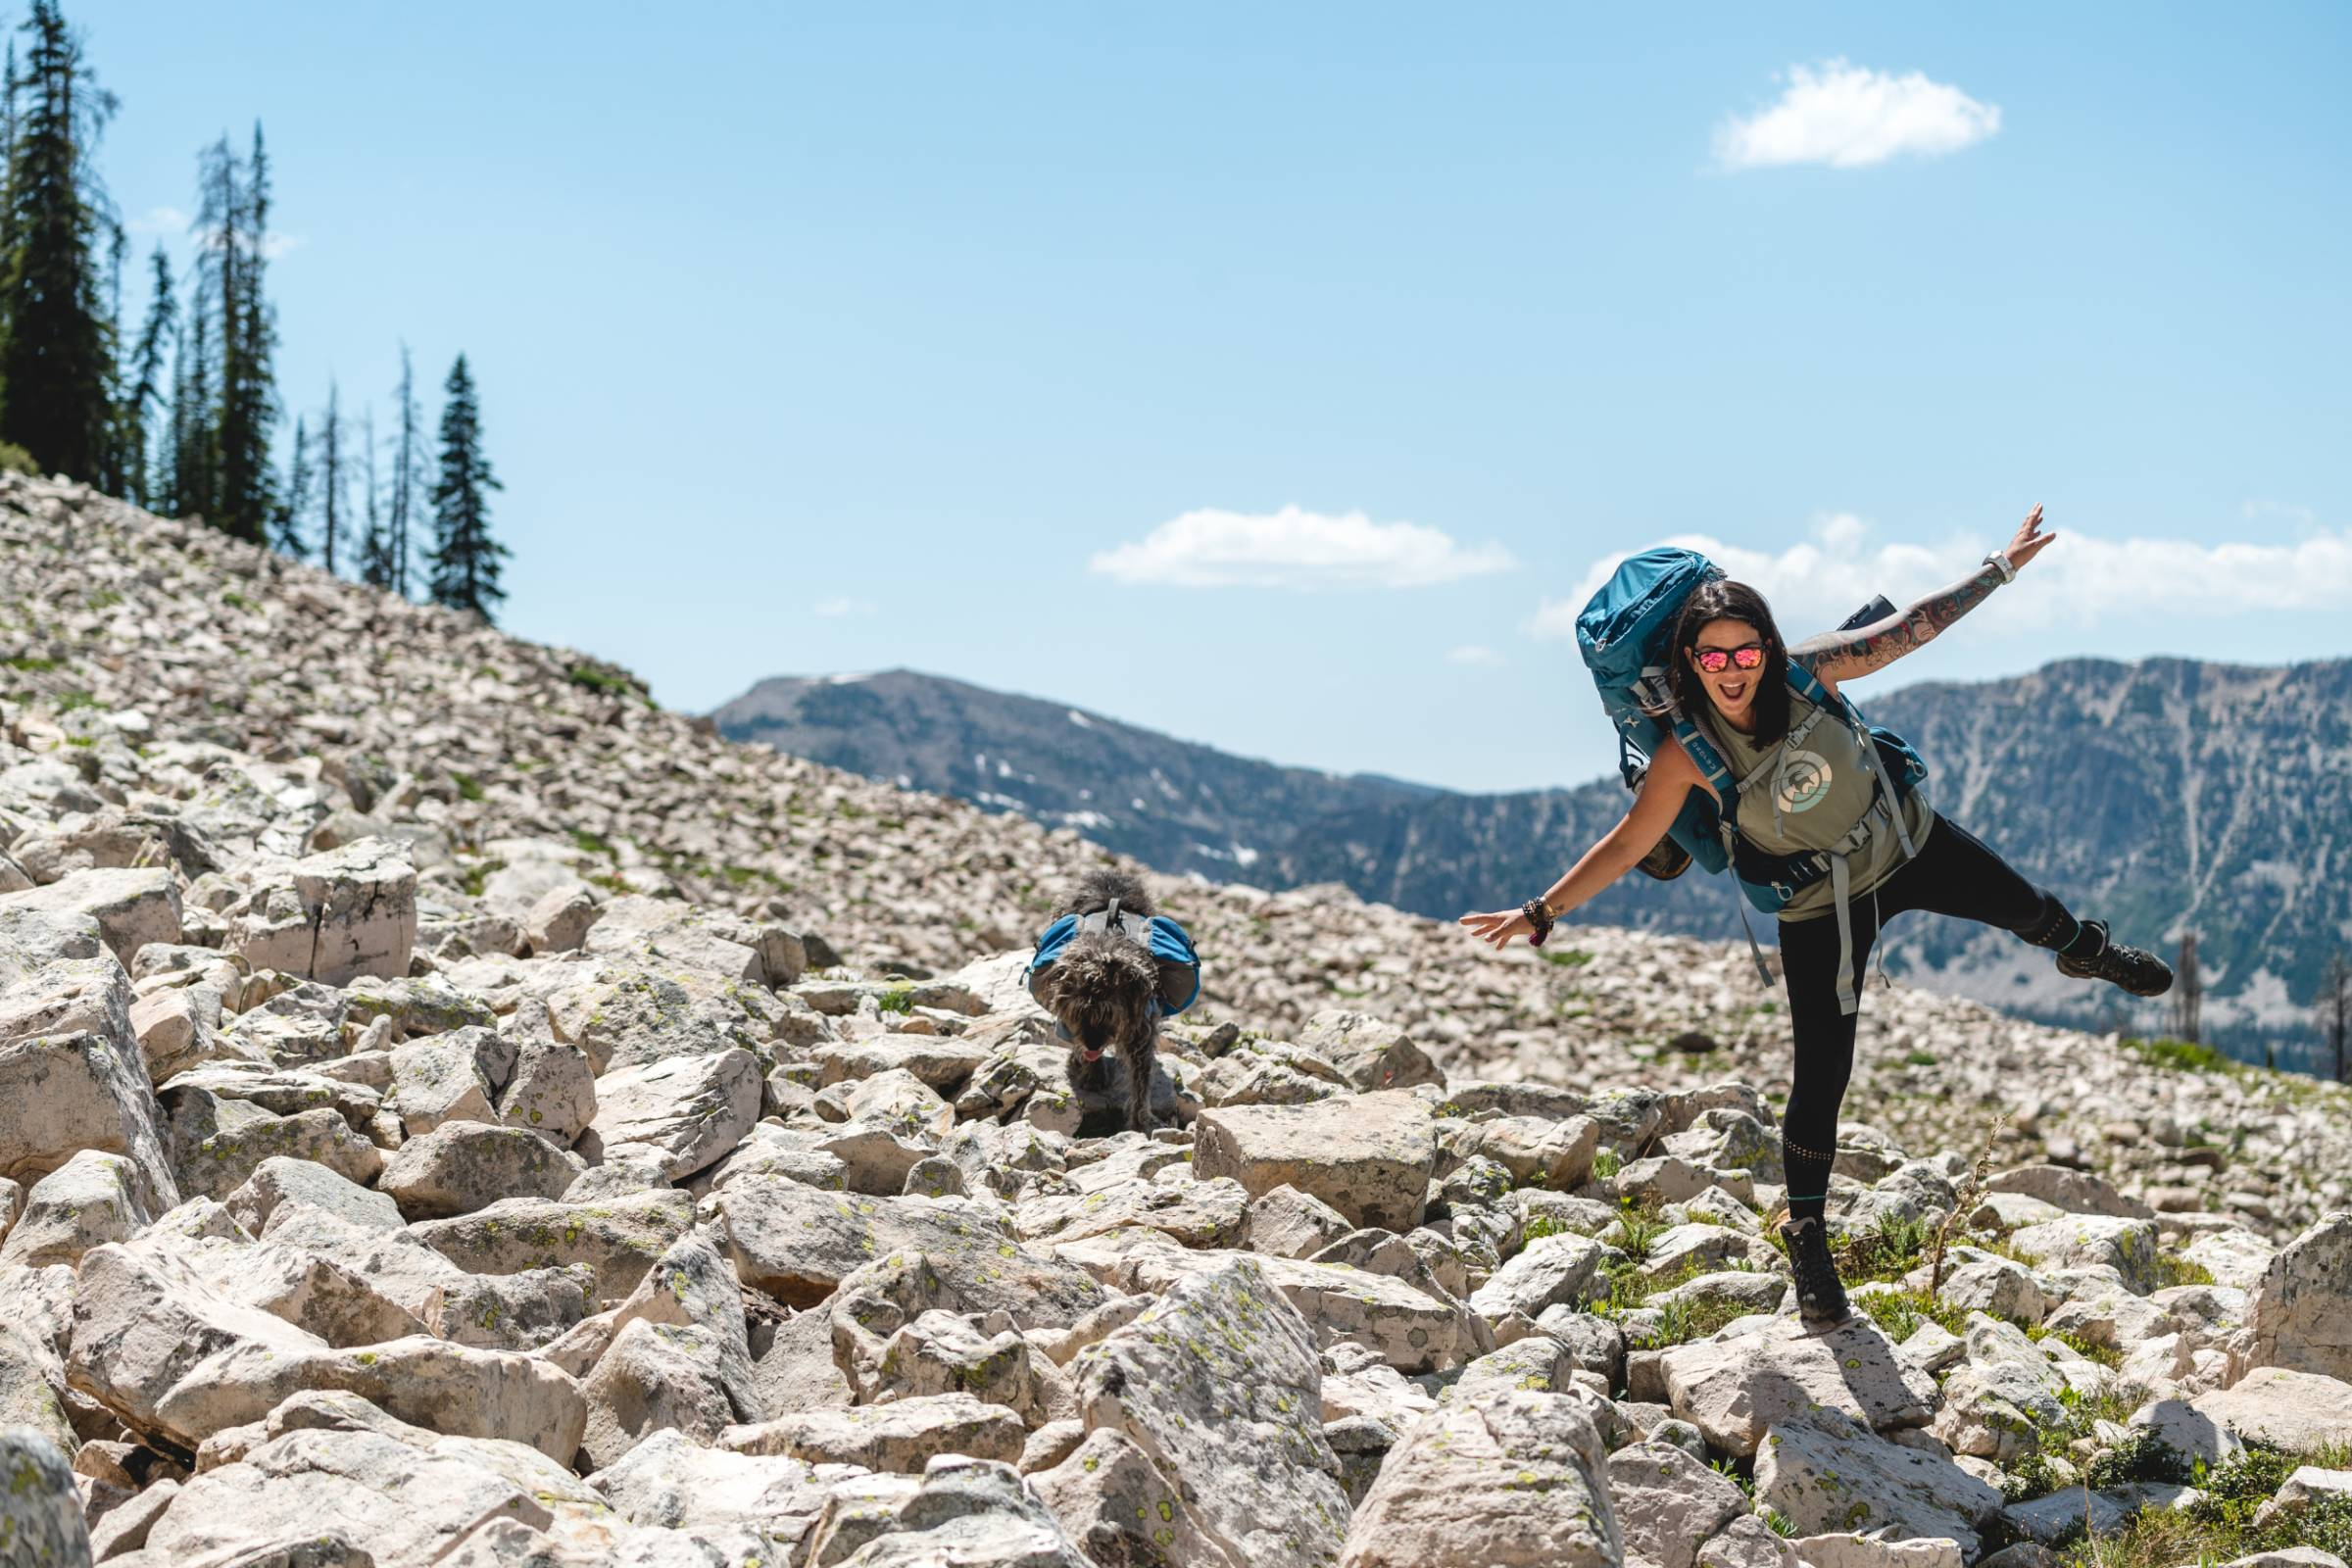 Backcountry Expedition Perks featured